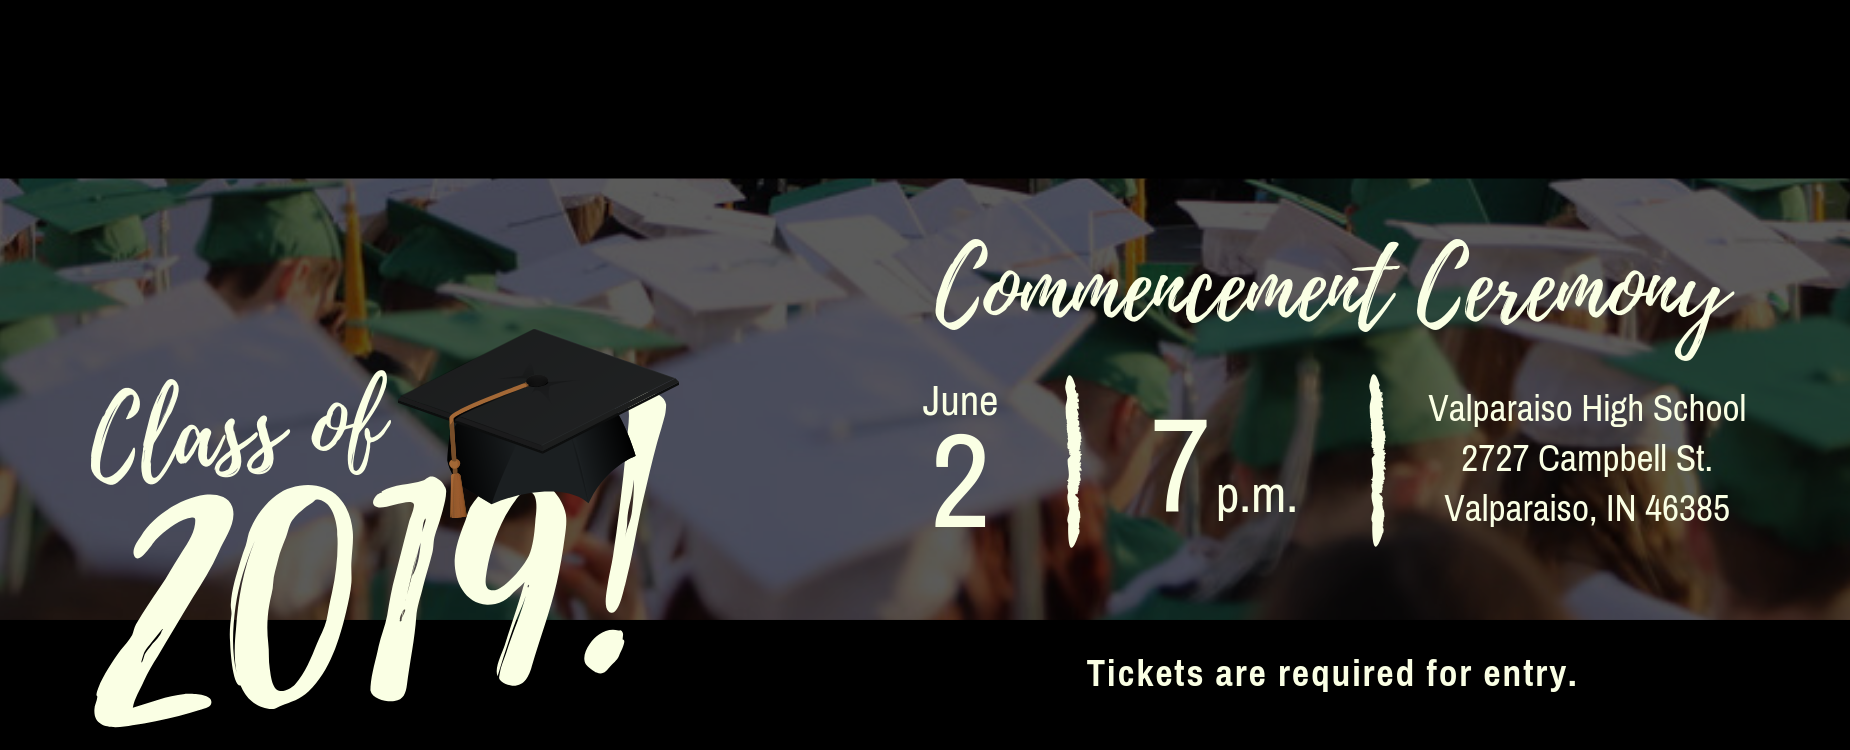 Class of 2019 Commencement Ceremony June 2, 7pm Valparaiso High School 2727 Campbell St Valparaiso, IN 46385